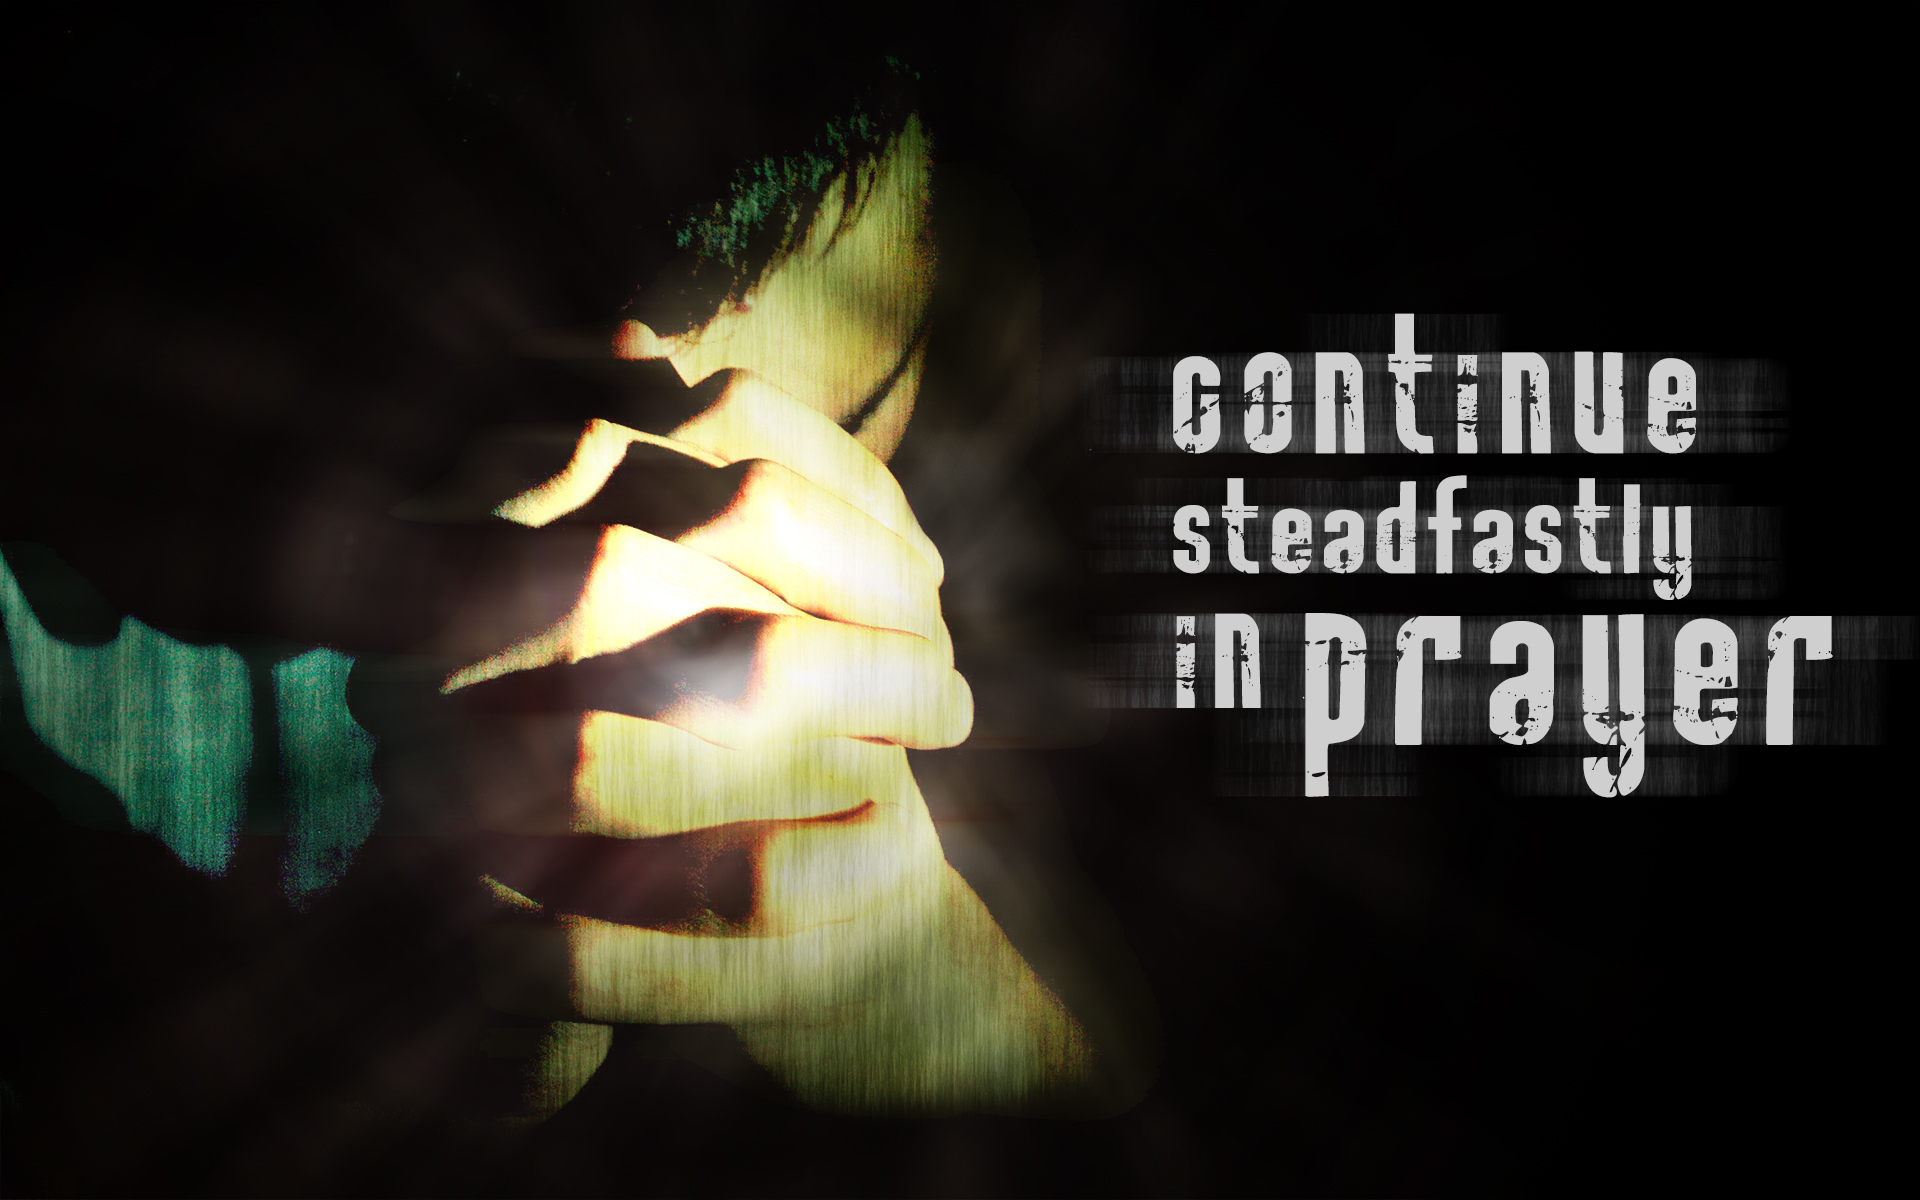 Jesus Hd Wallpapers With Quotes Continue Steadfastly Christian Wallpapers